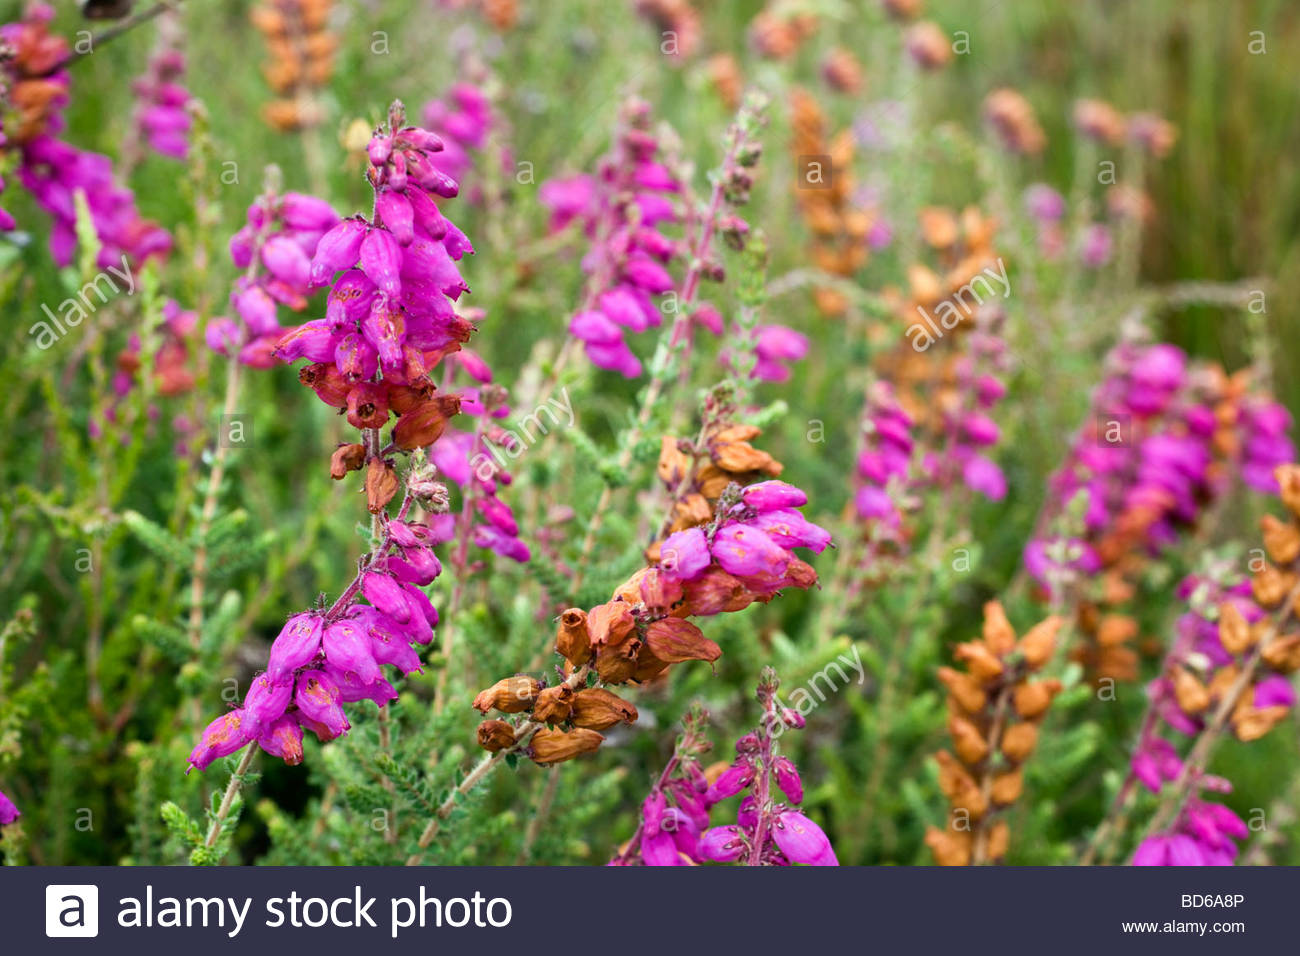 dorset heath Ericaceae ciliaris - Stock Image